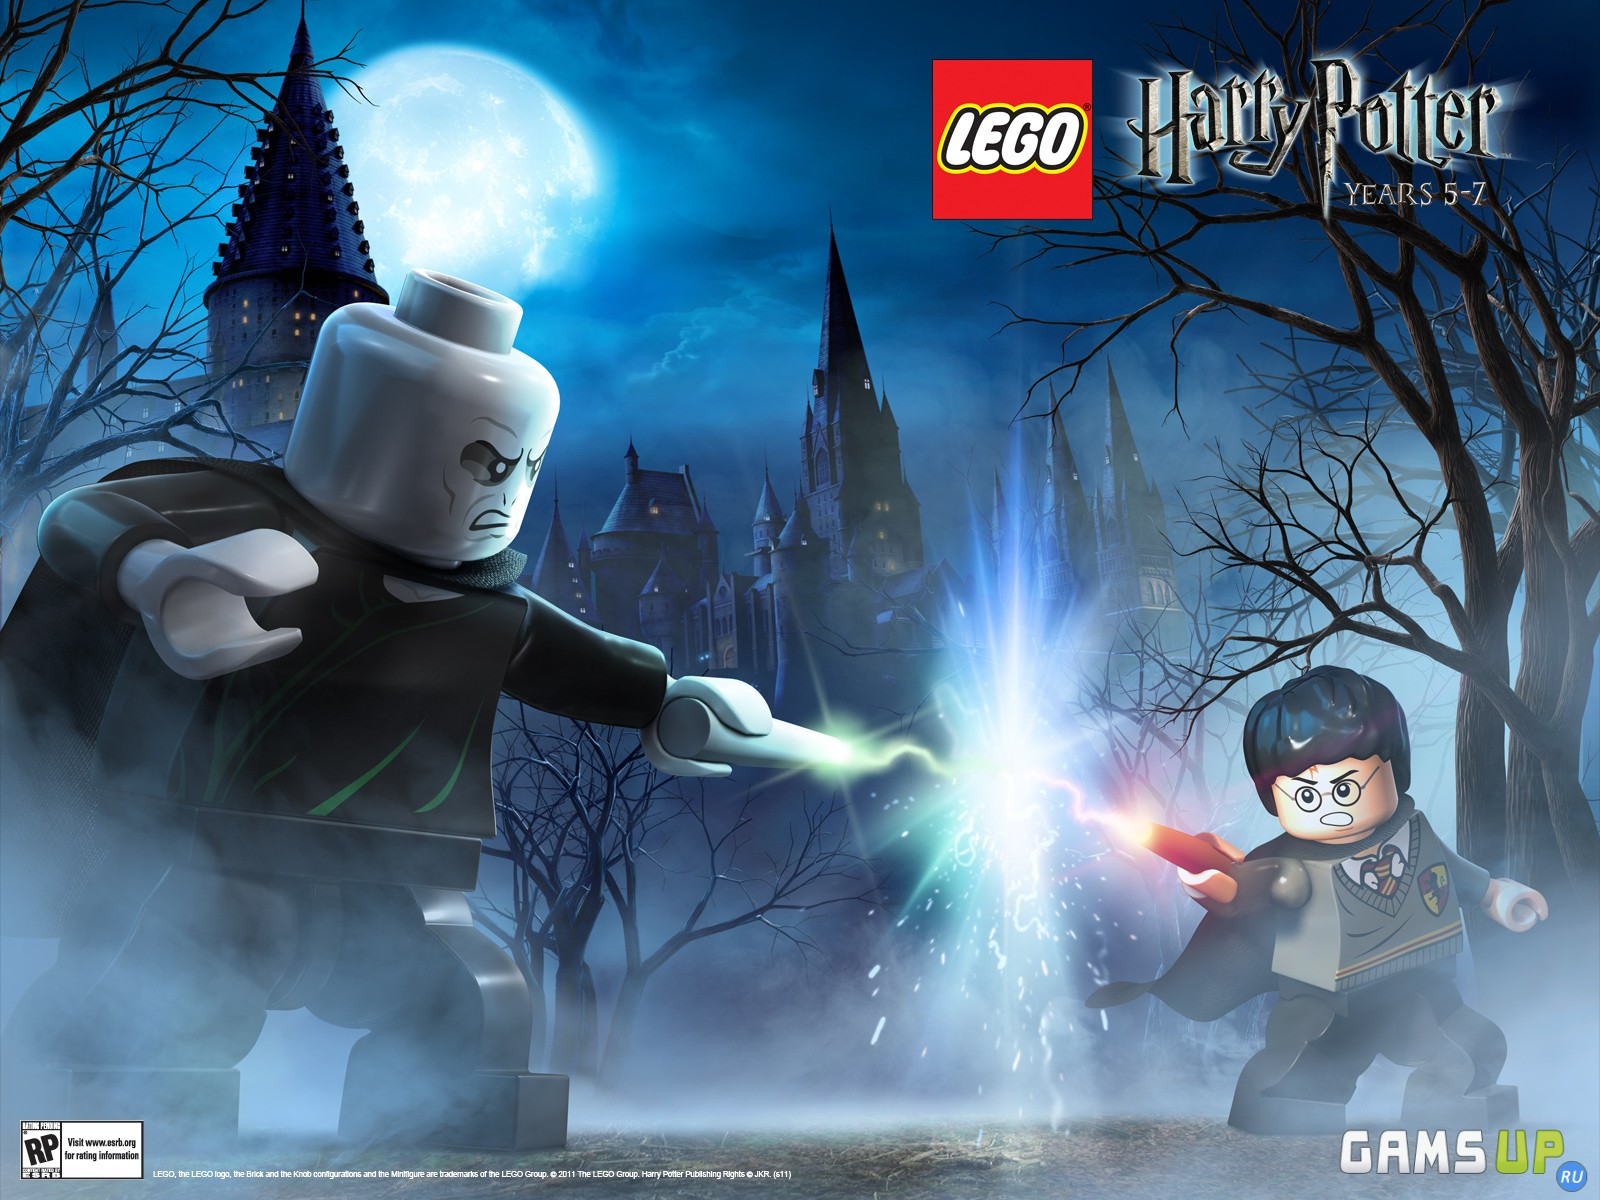 Lego Harry Potter Fondo De Pantalla Lego Harry Potter